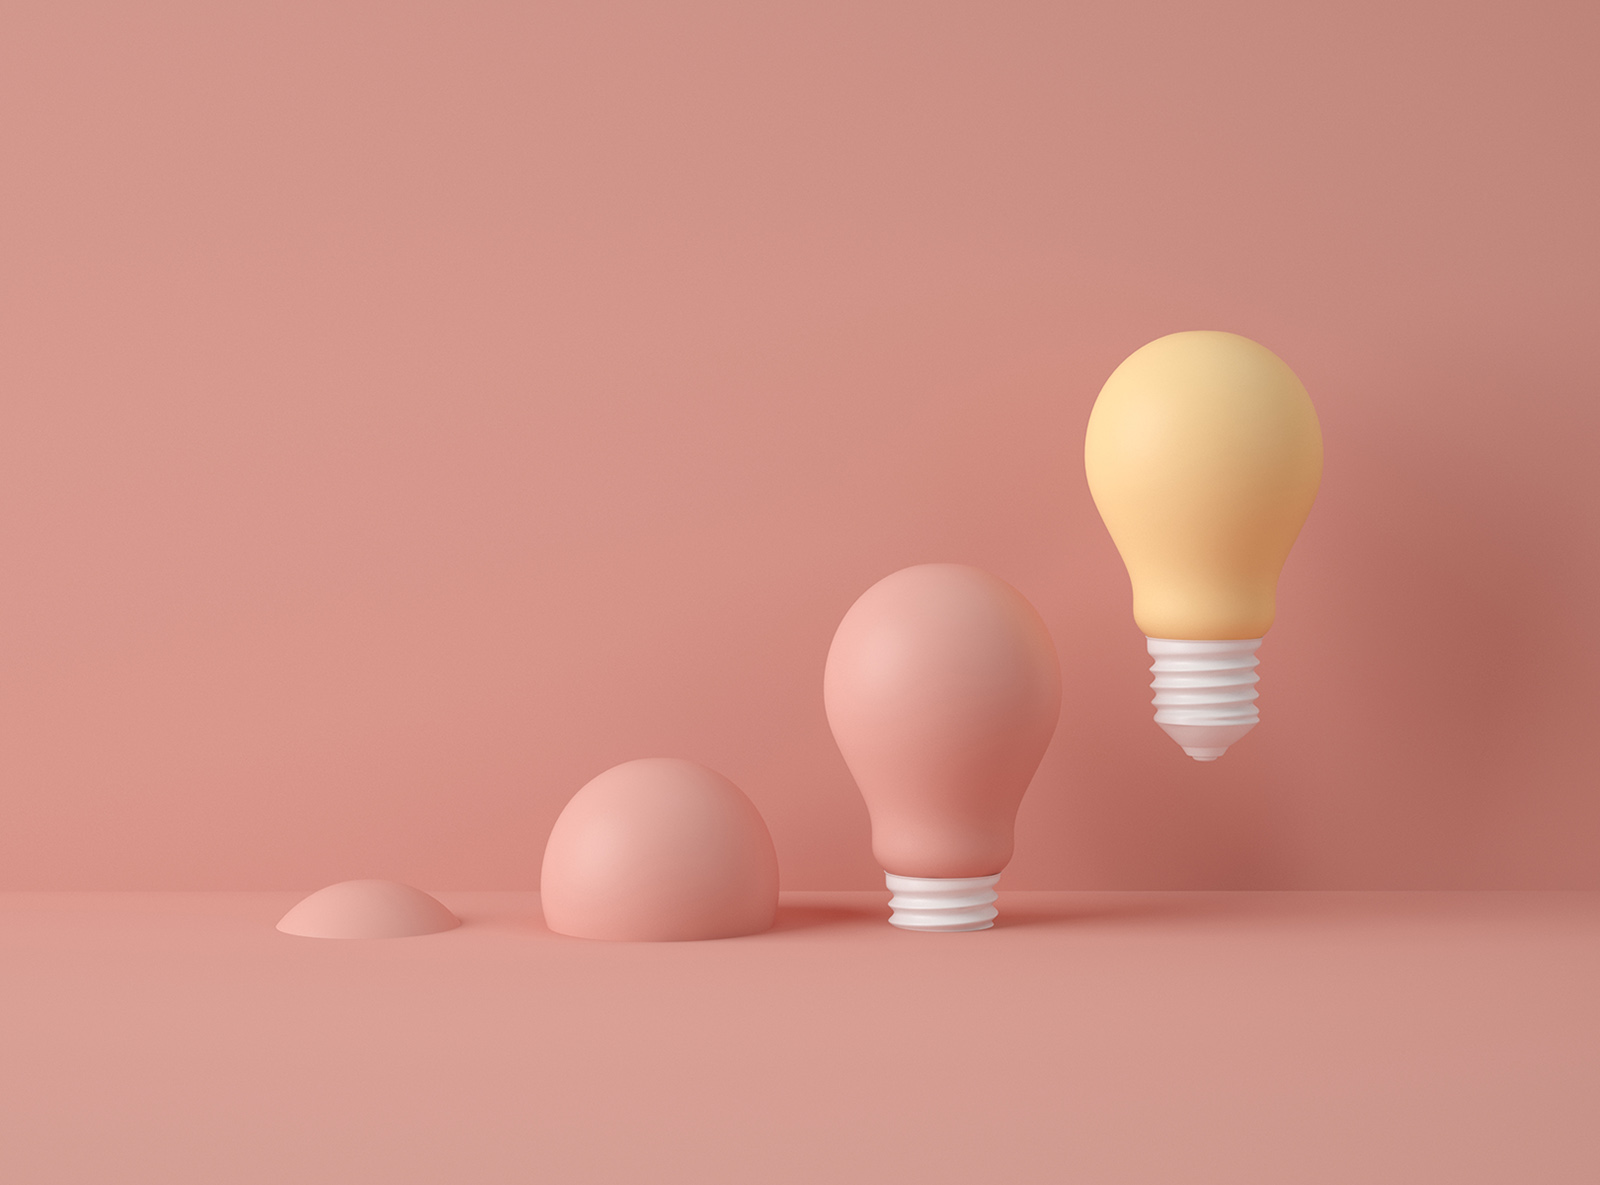 3d-illustration-row-of-light-bulbs-with-one-of-dif-36TJNRP.jpg